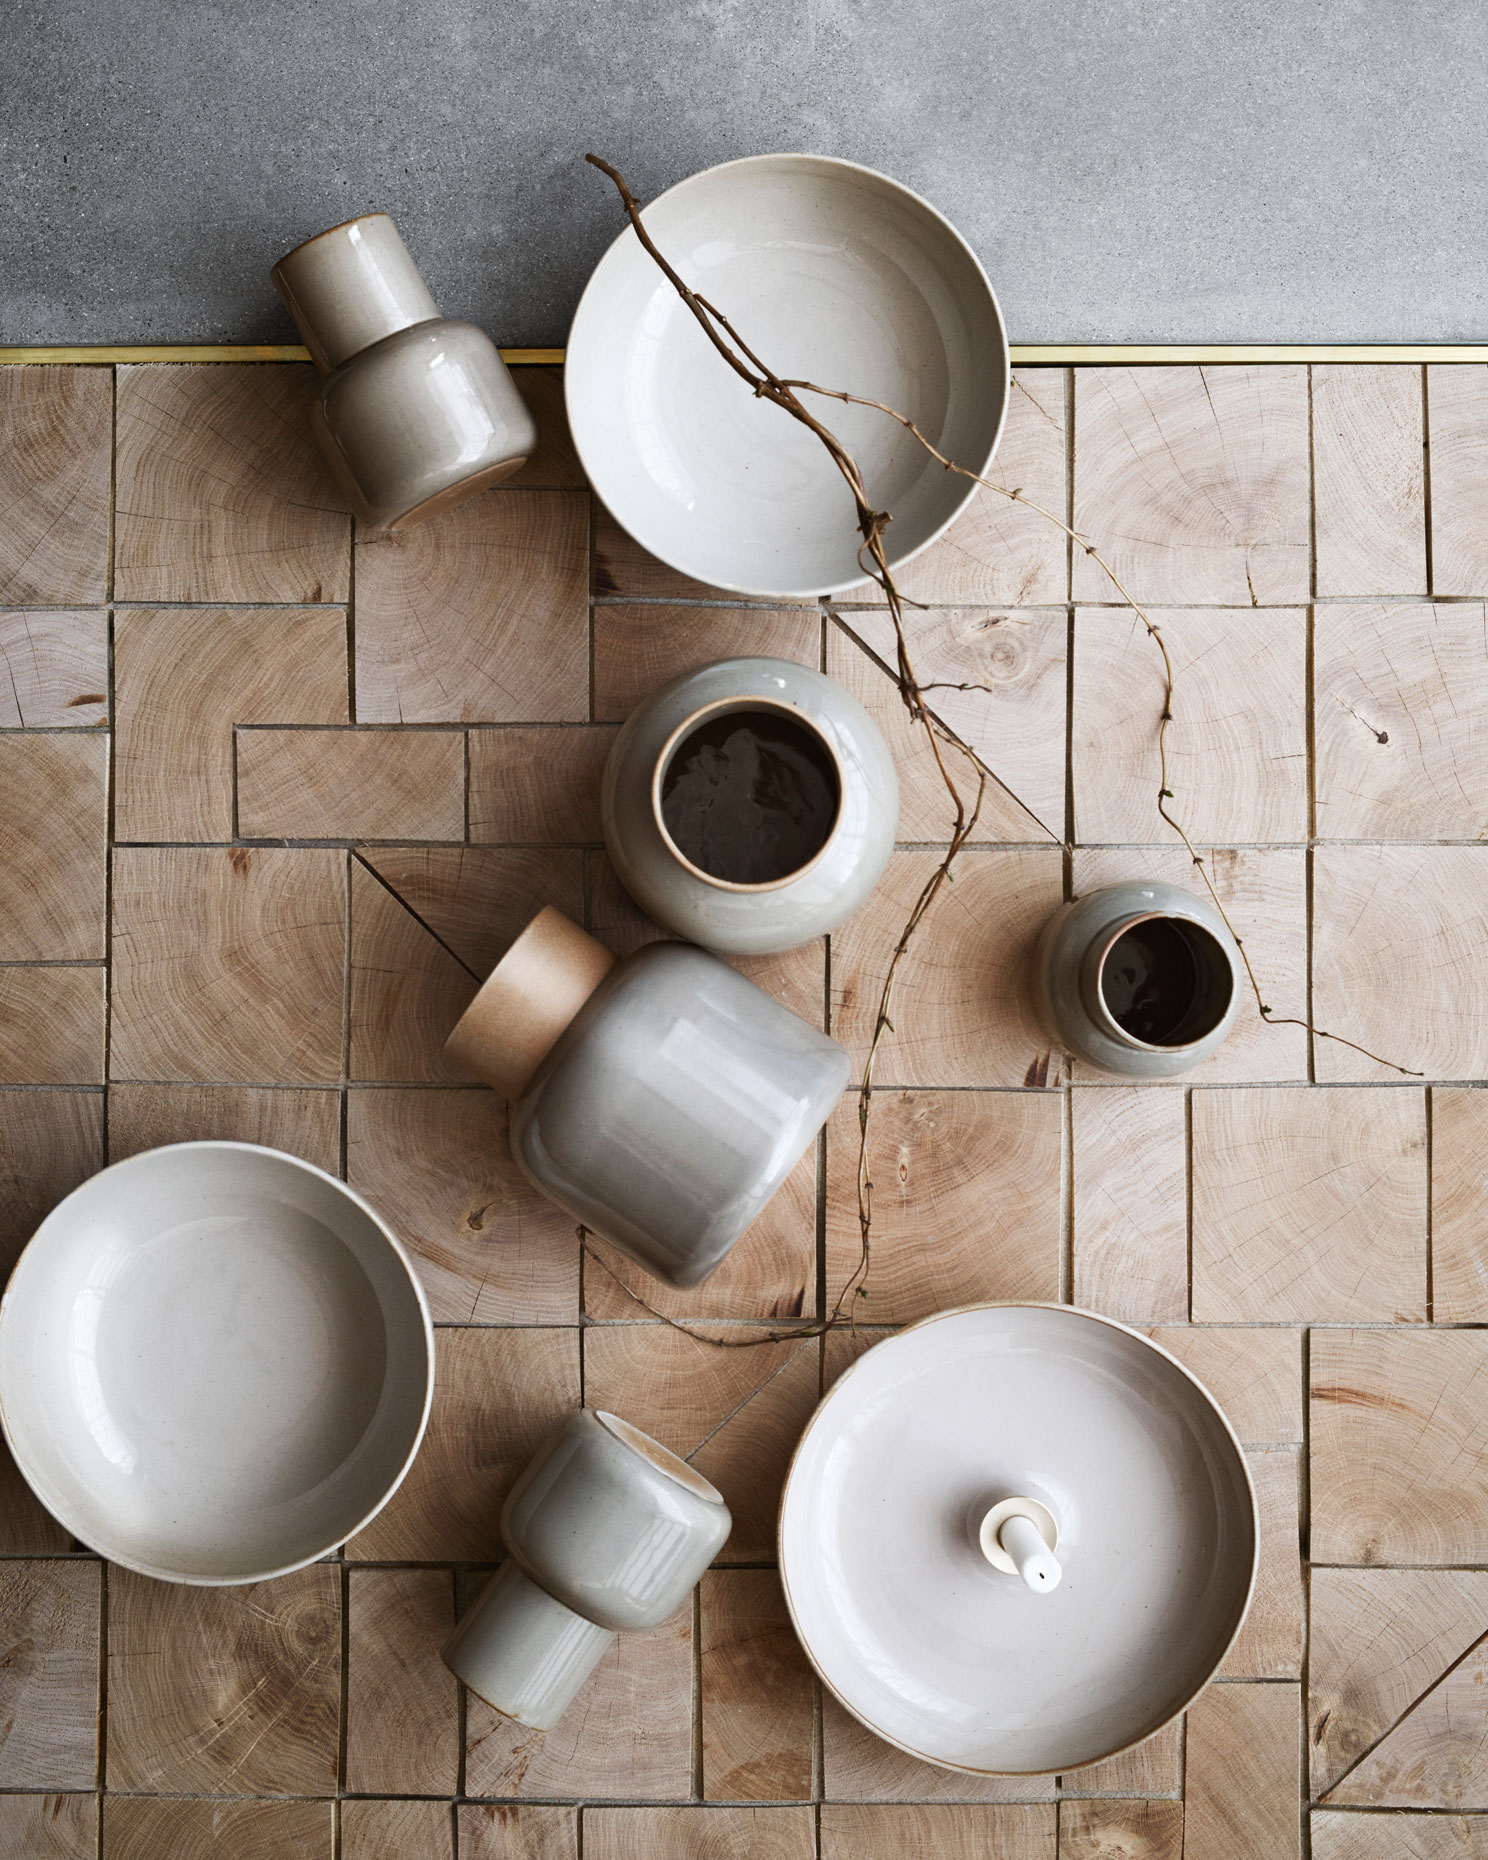 Objects - Earthenware / Four objects created in high burned Japanese earthenware 2016